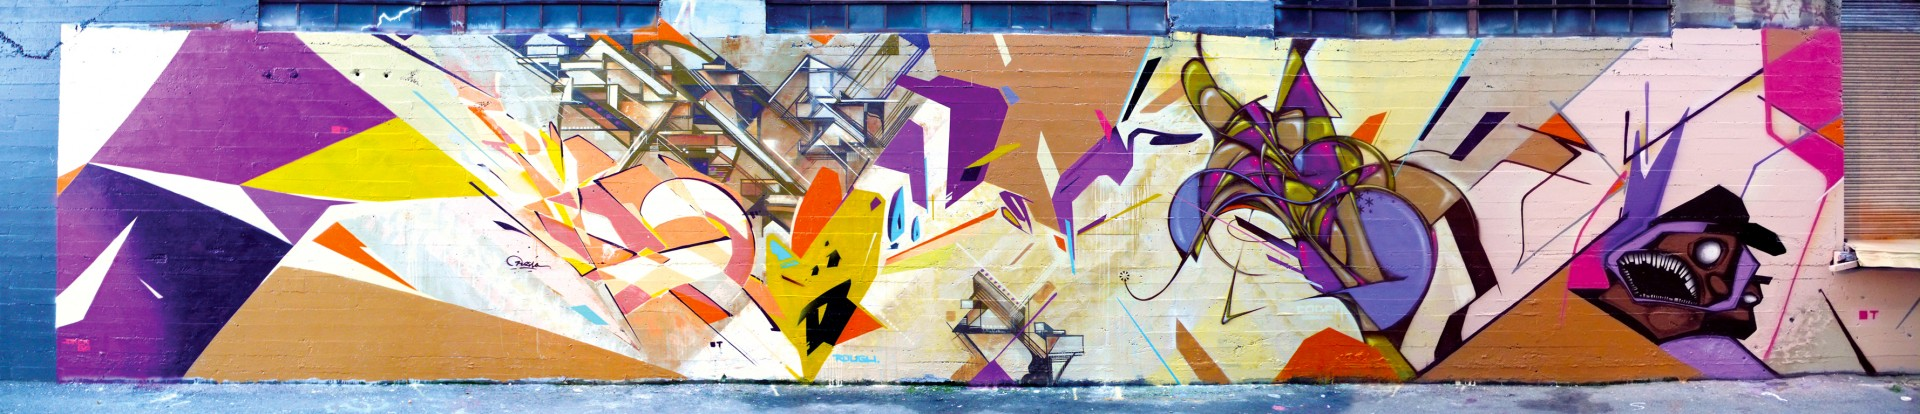 Collaboration with Joker, Augustine Kofie, Poesia, Codak, Kema and Dial - 2010 San Francisco